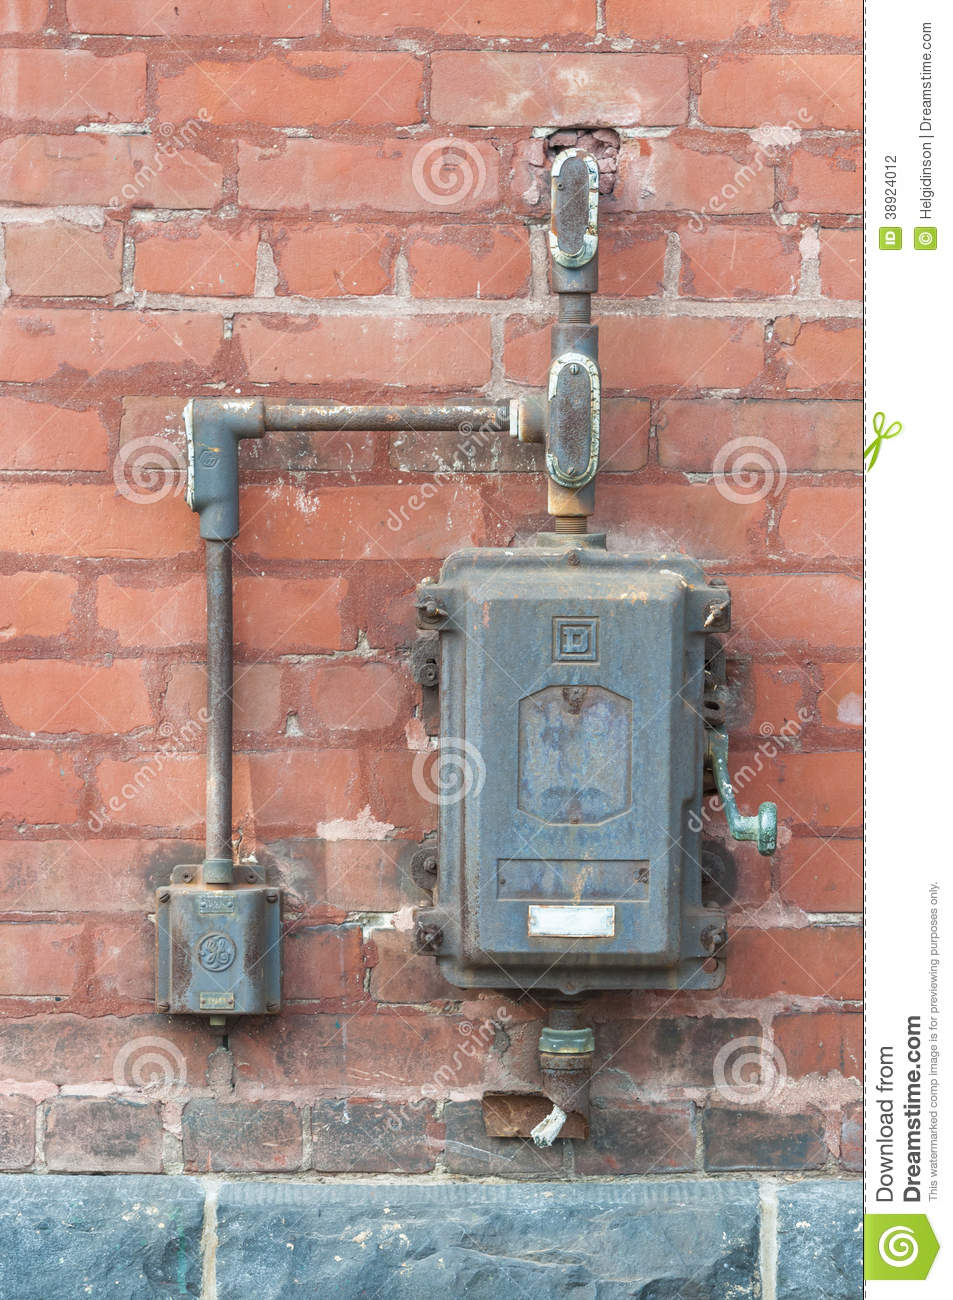 Old power switch box stock photo. Image of industry, distribution ...